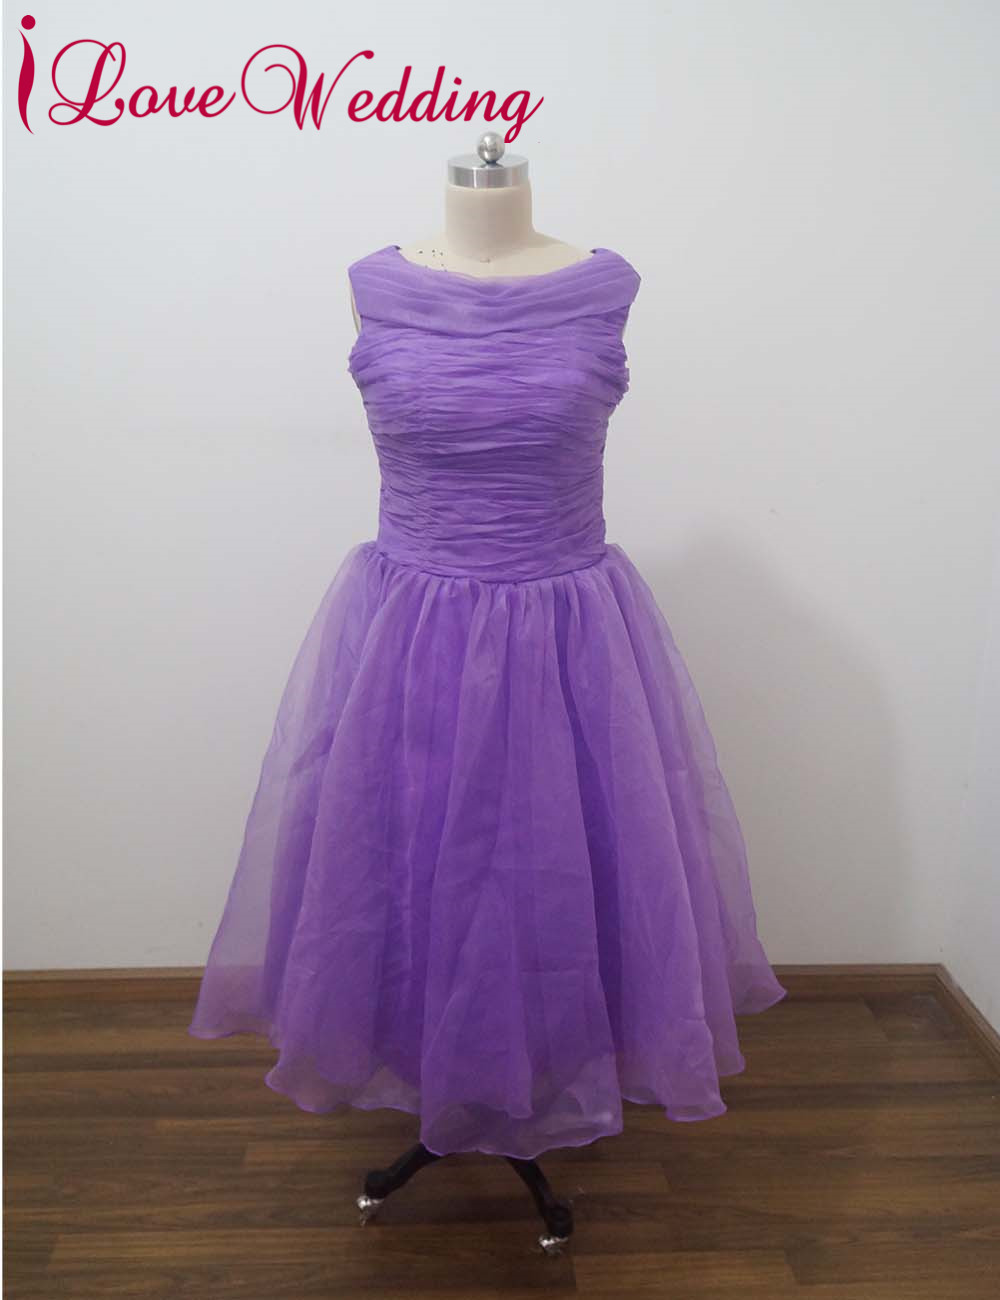 Online Shop for 1950s prom dresses Wholesale with Best Price